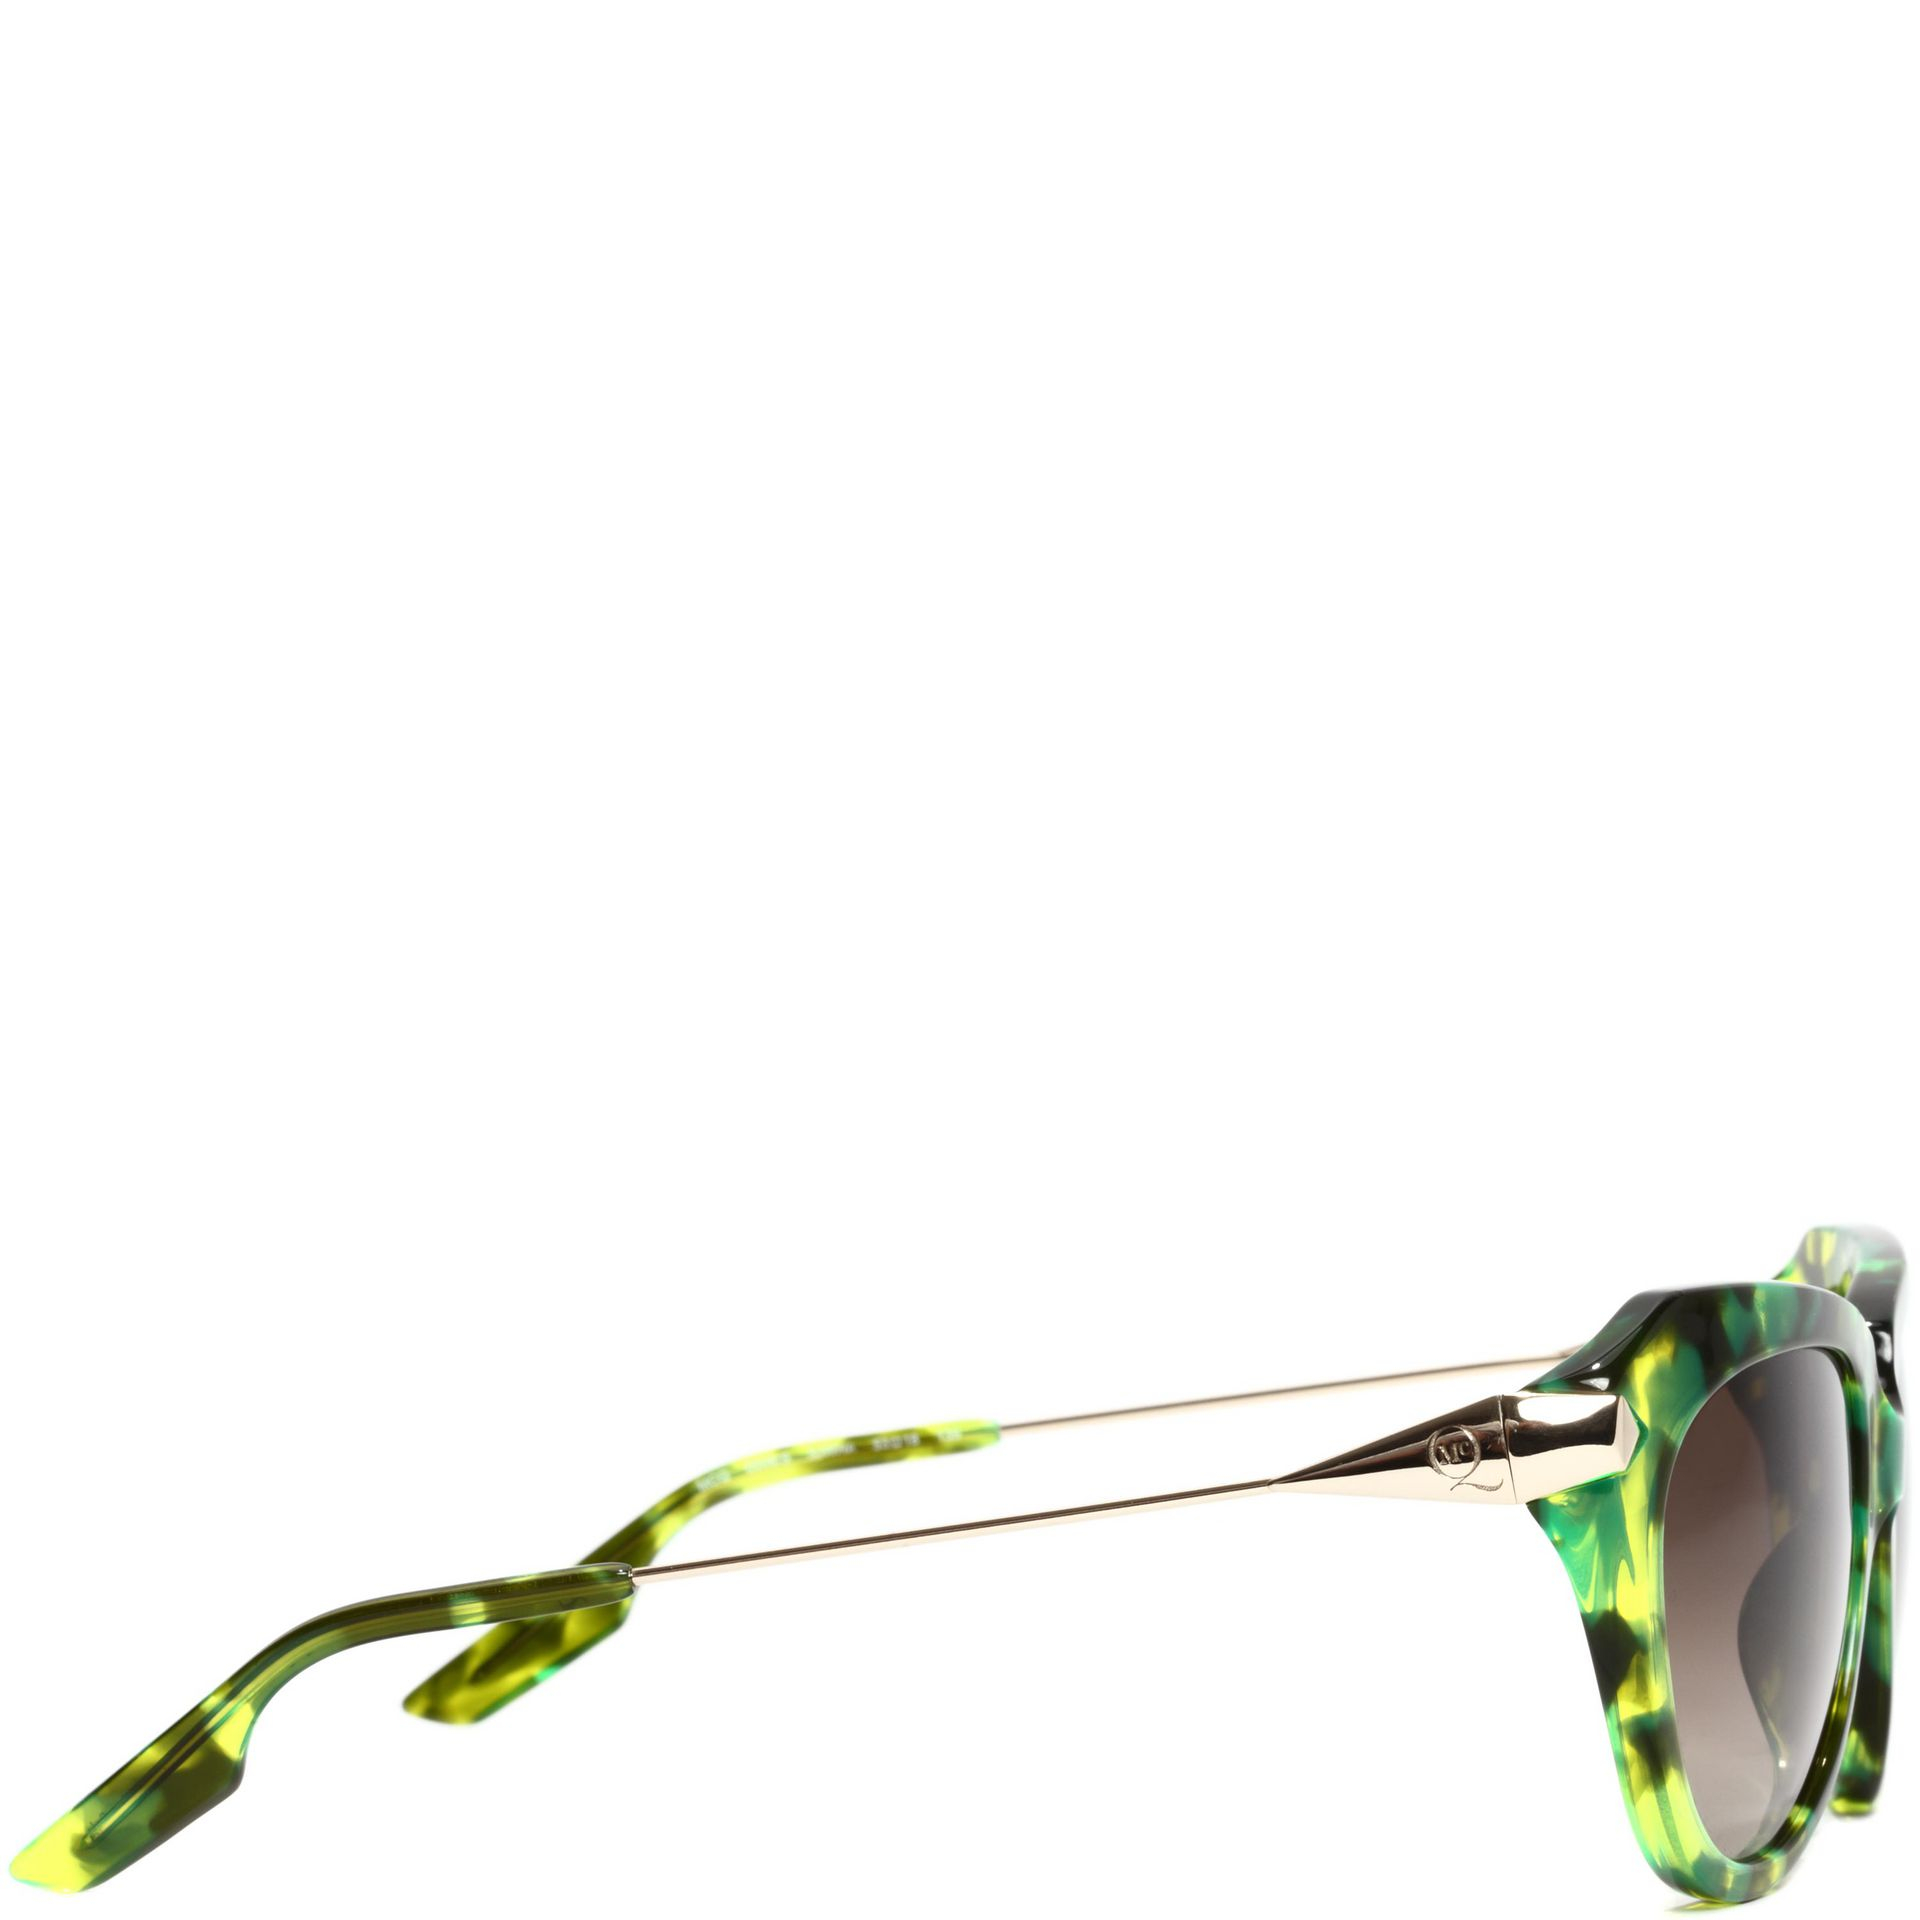 5fe62d0cb93af McQ Stealth Havana Sunglasses in Green - Lyst